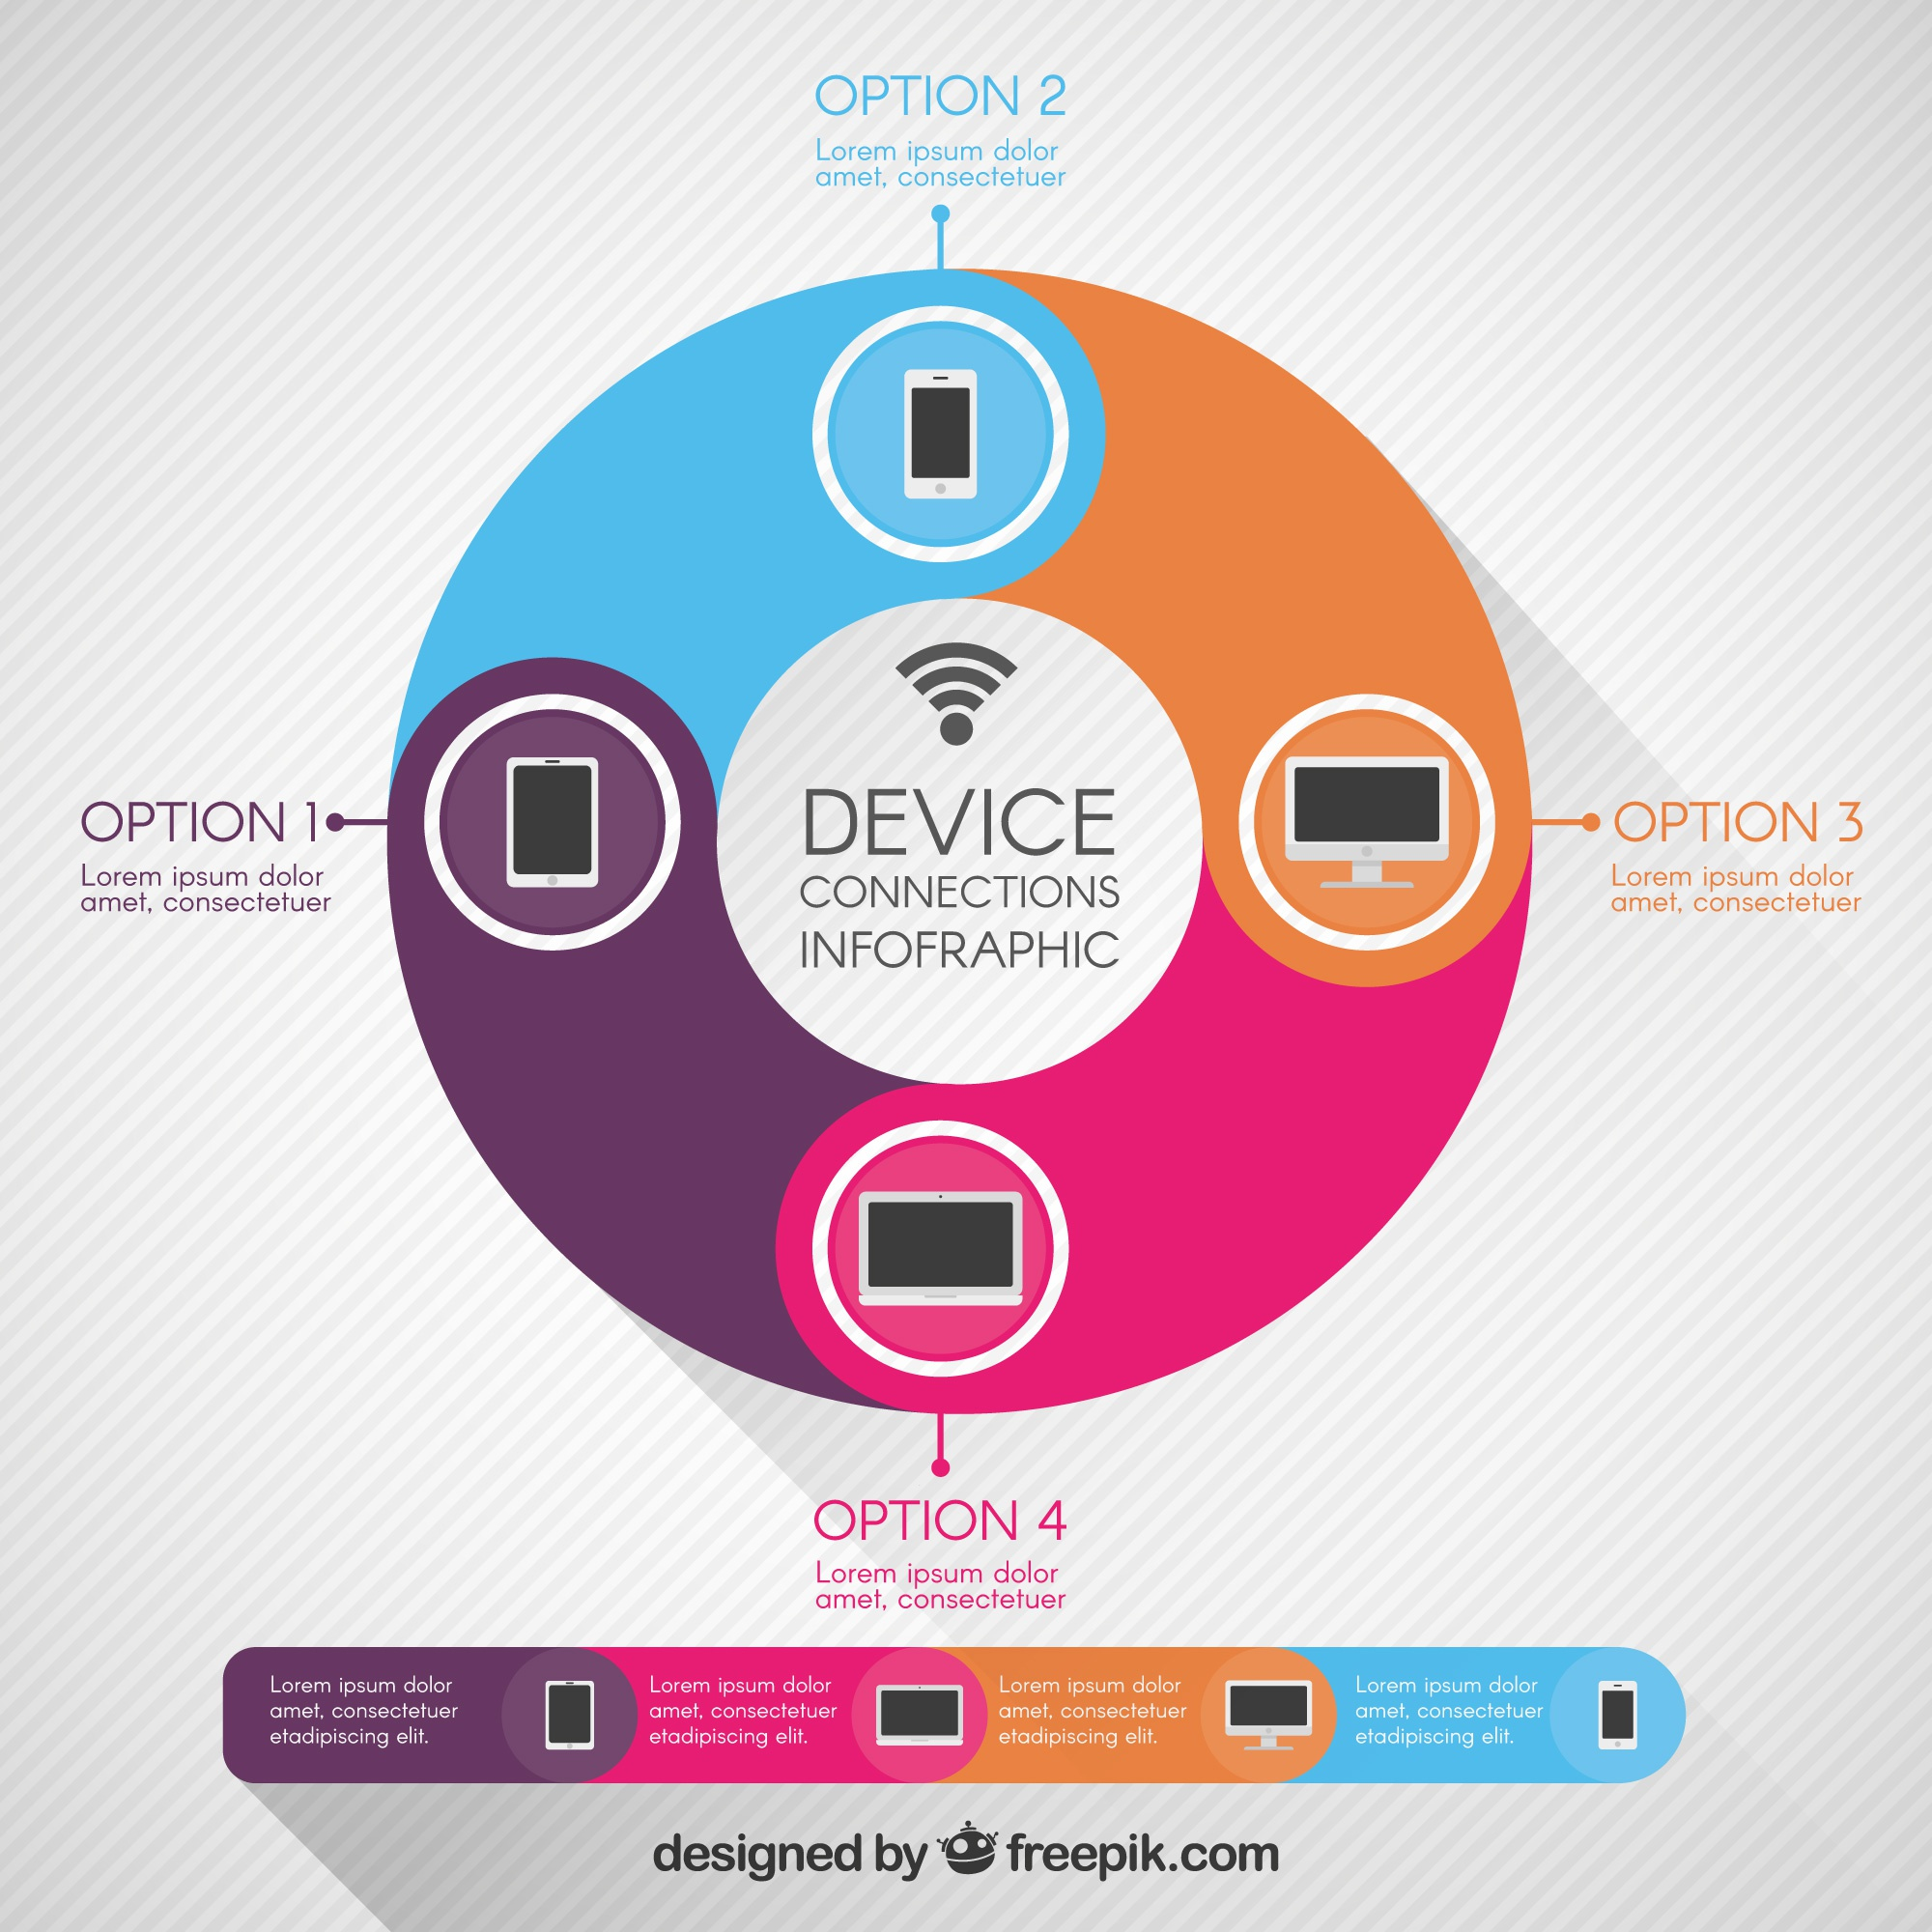 Colored infographic with different devices